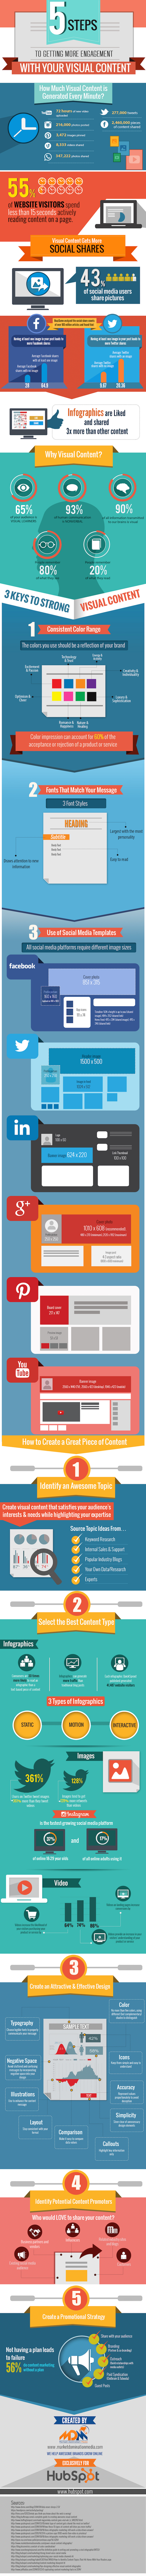 get-more-engagement-with-visual-content